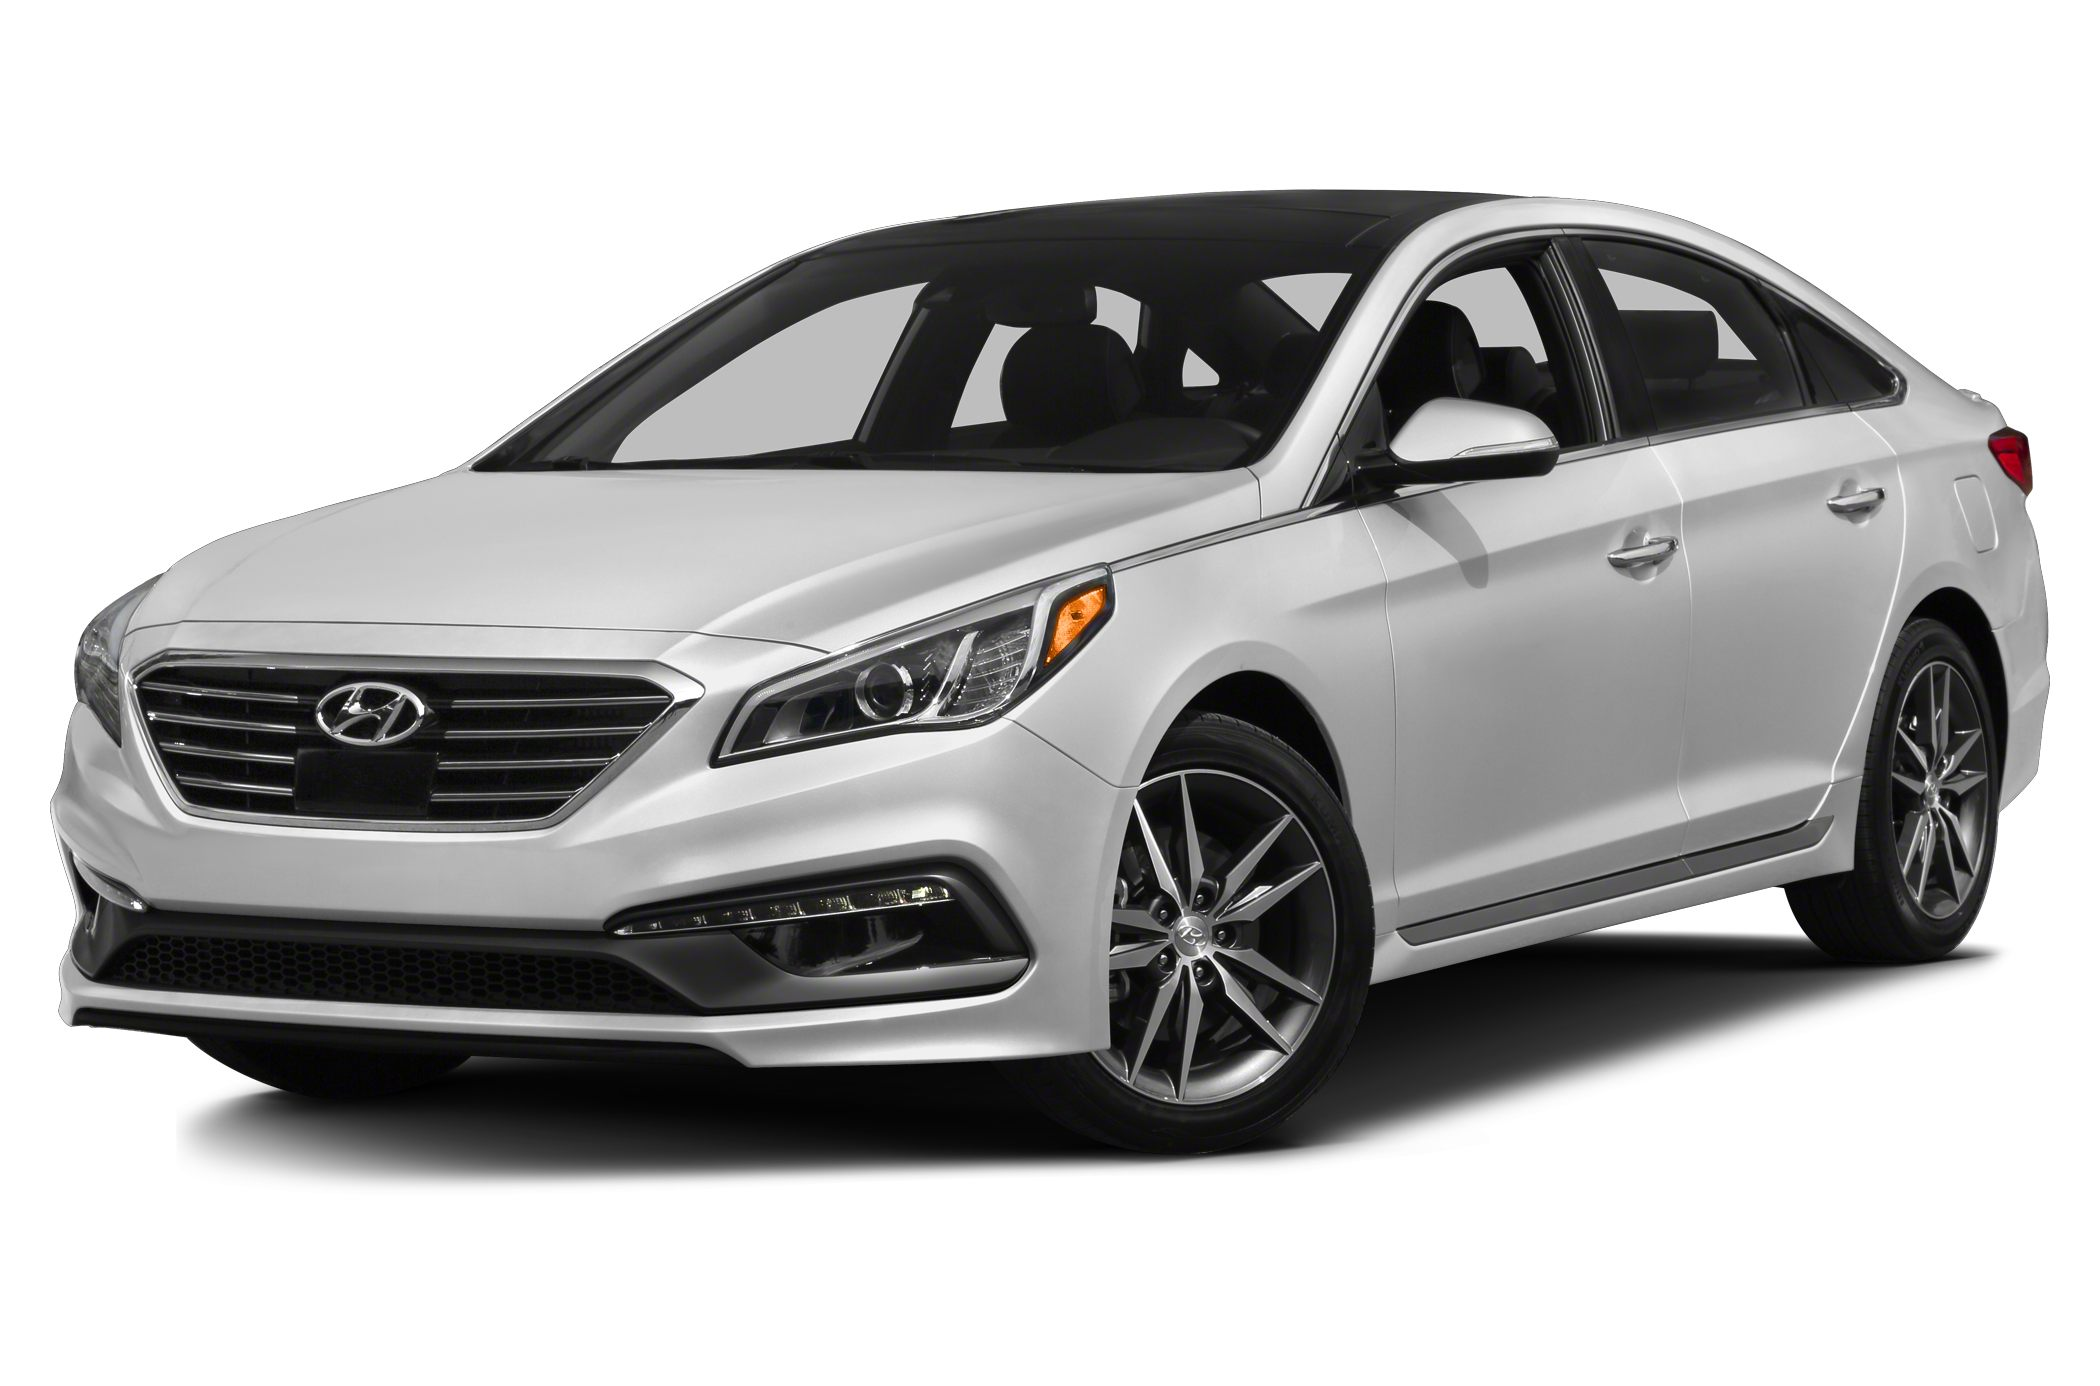 2015 Hyundai Sonata Sport Sedan for sale in Birmingham for $27,705 with 16 miles.